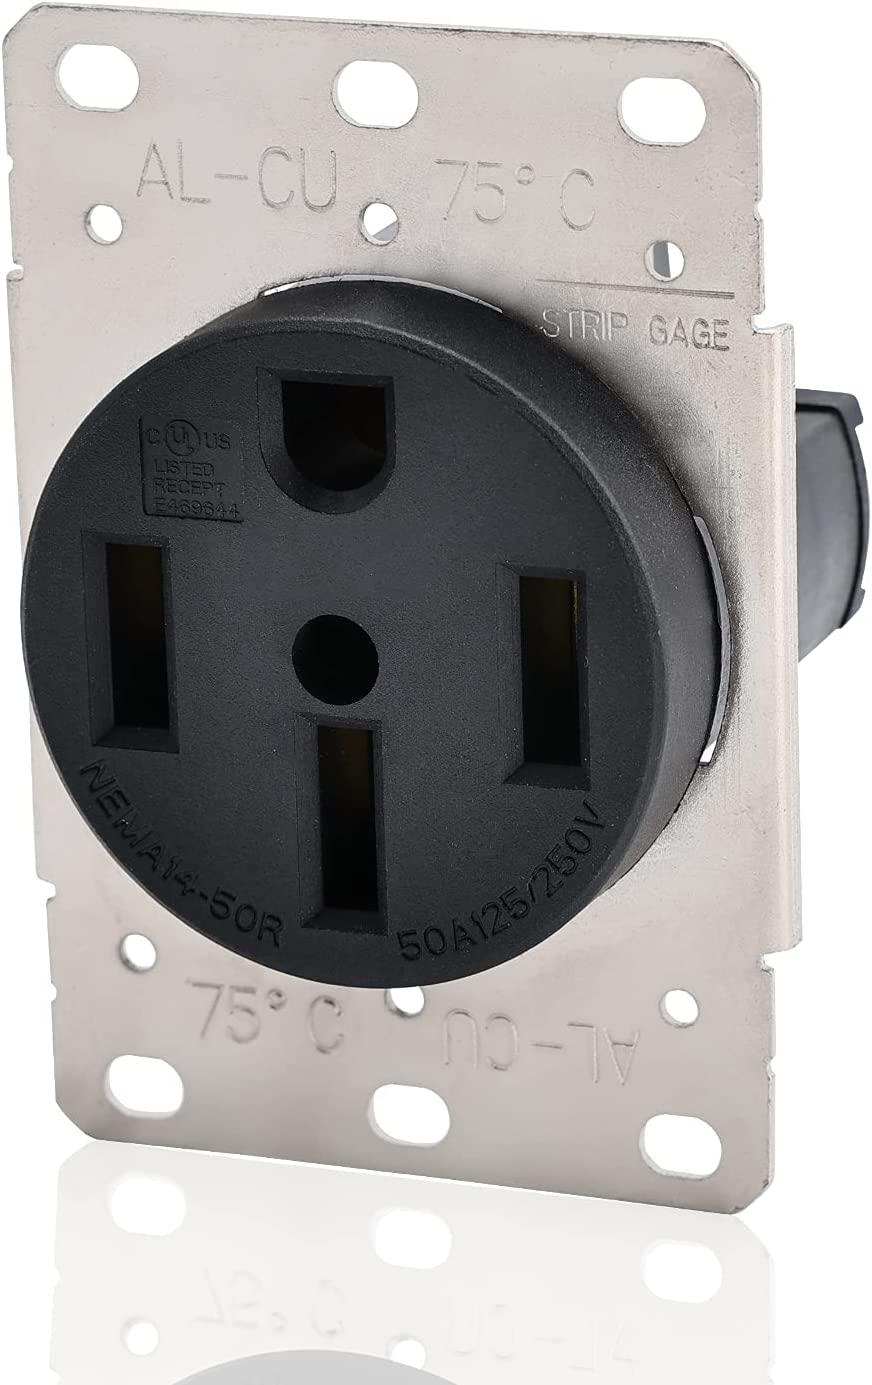 STARELO Flush Mounting Receptacle NEMA 14-50R 125 50A Spring new work 250V 3 Po Ranking integrated 1st place